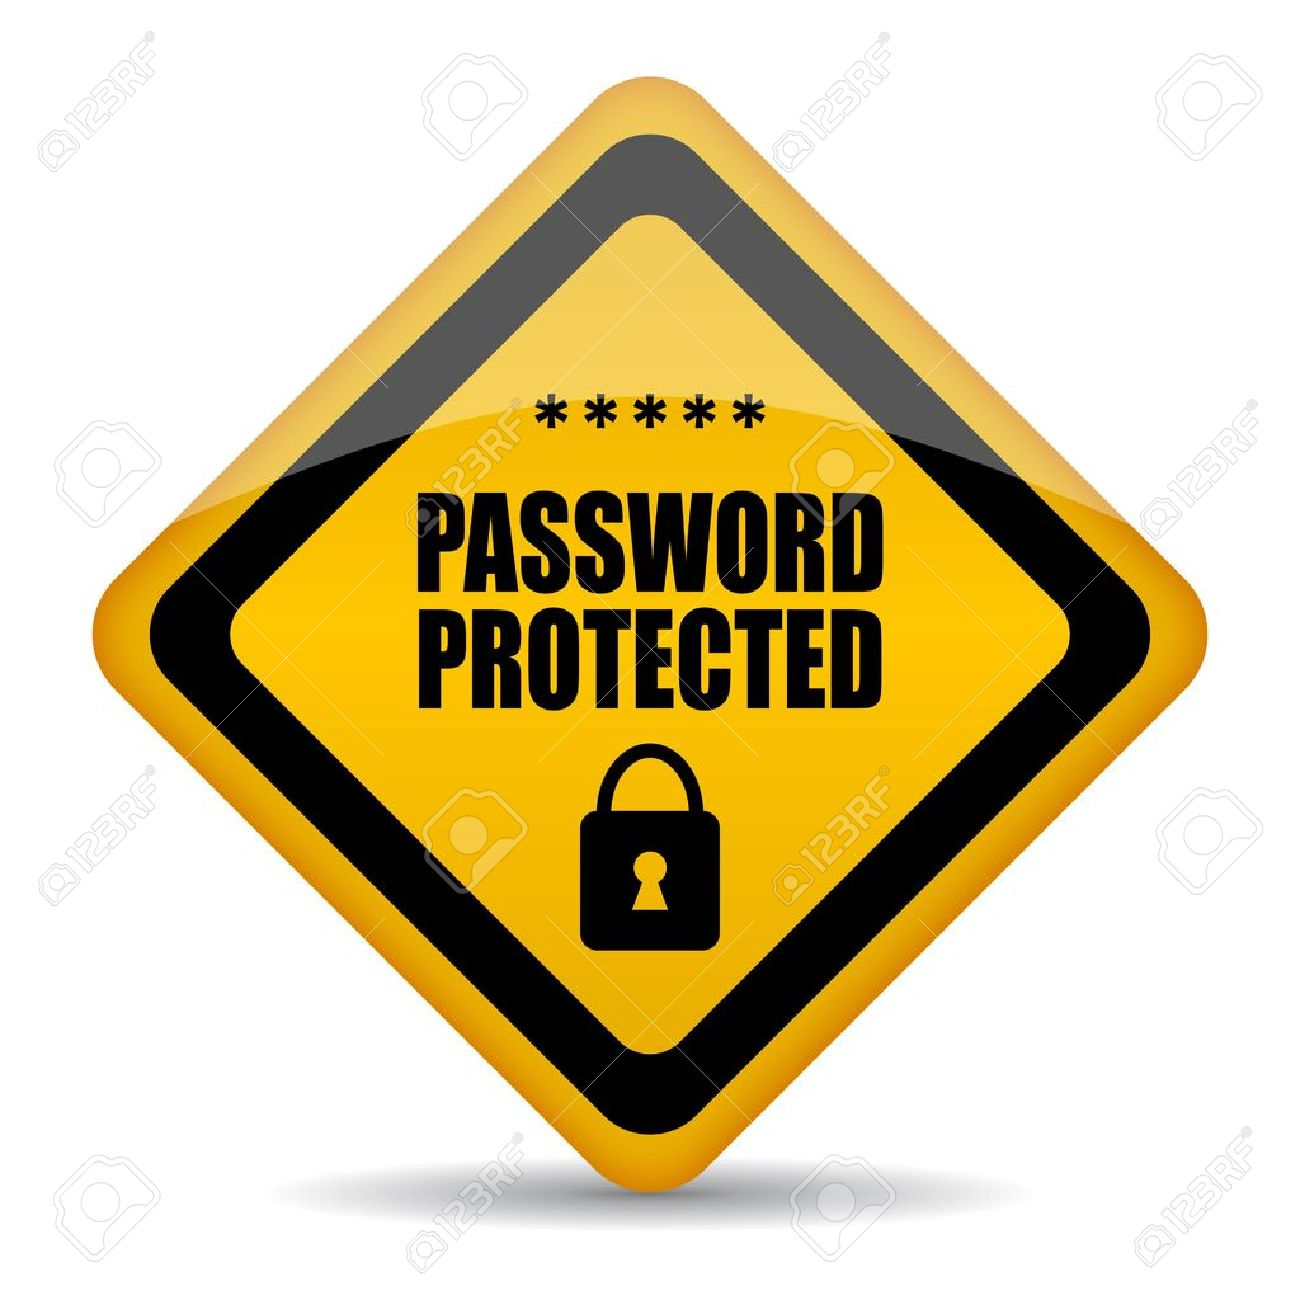 Password security clipart black and white download Privacy and Security Clip Art – Clipart Free Download black and white download